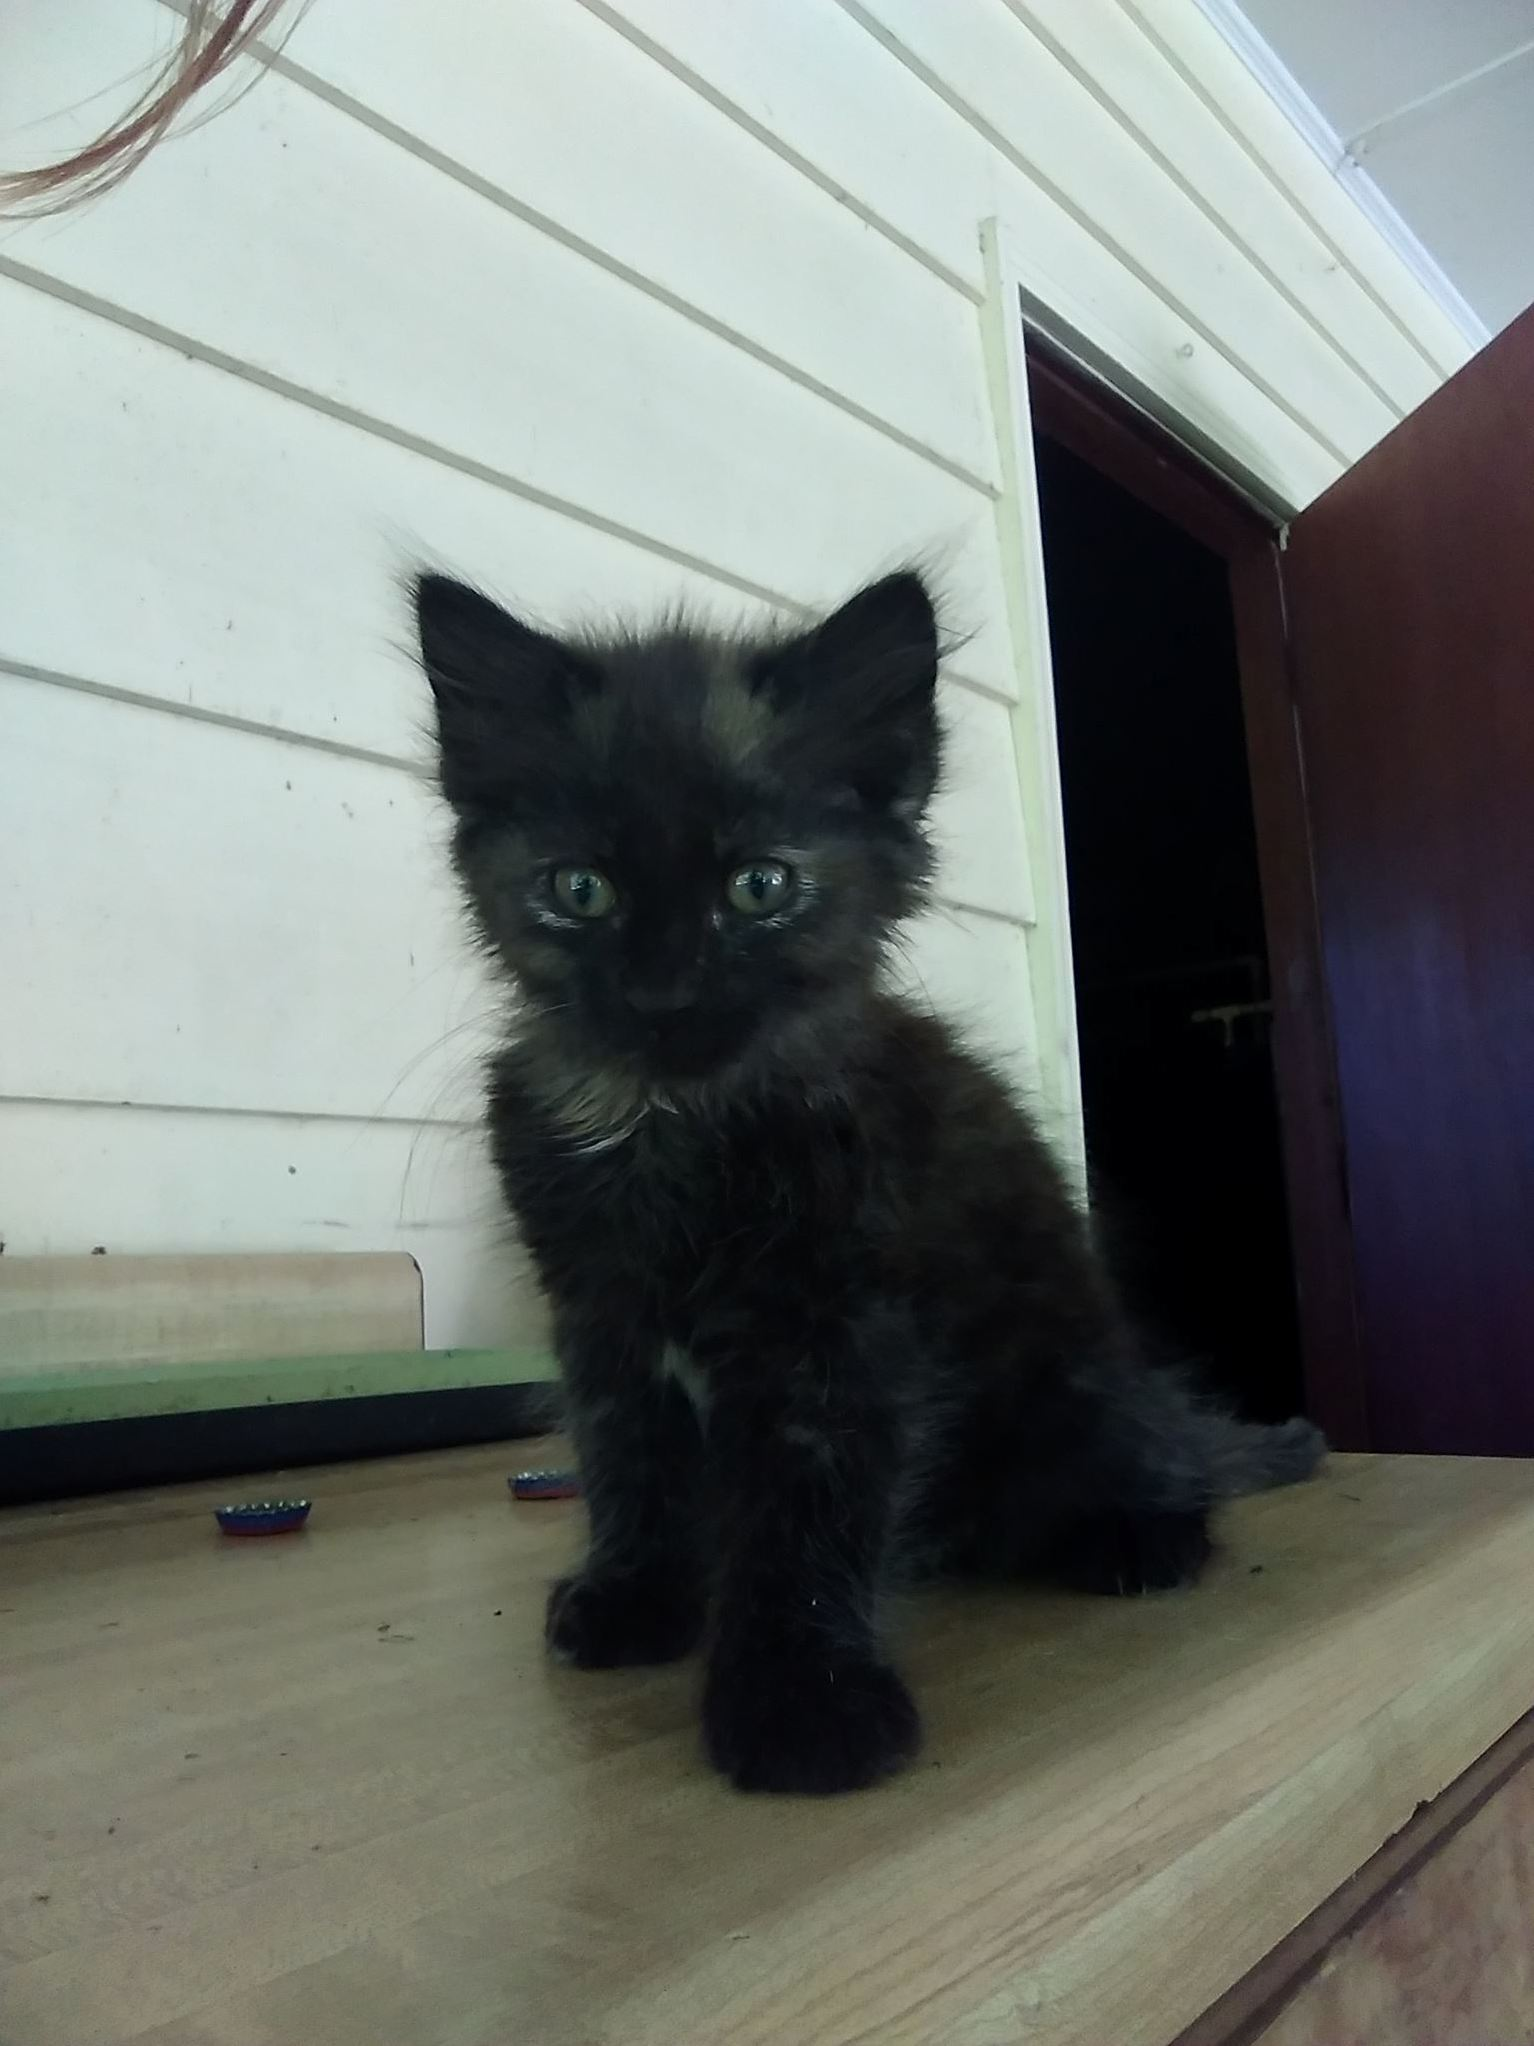 Help me name this friendly little soot sprite